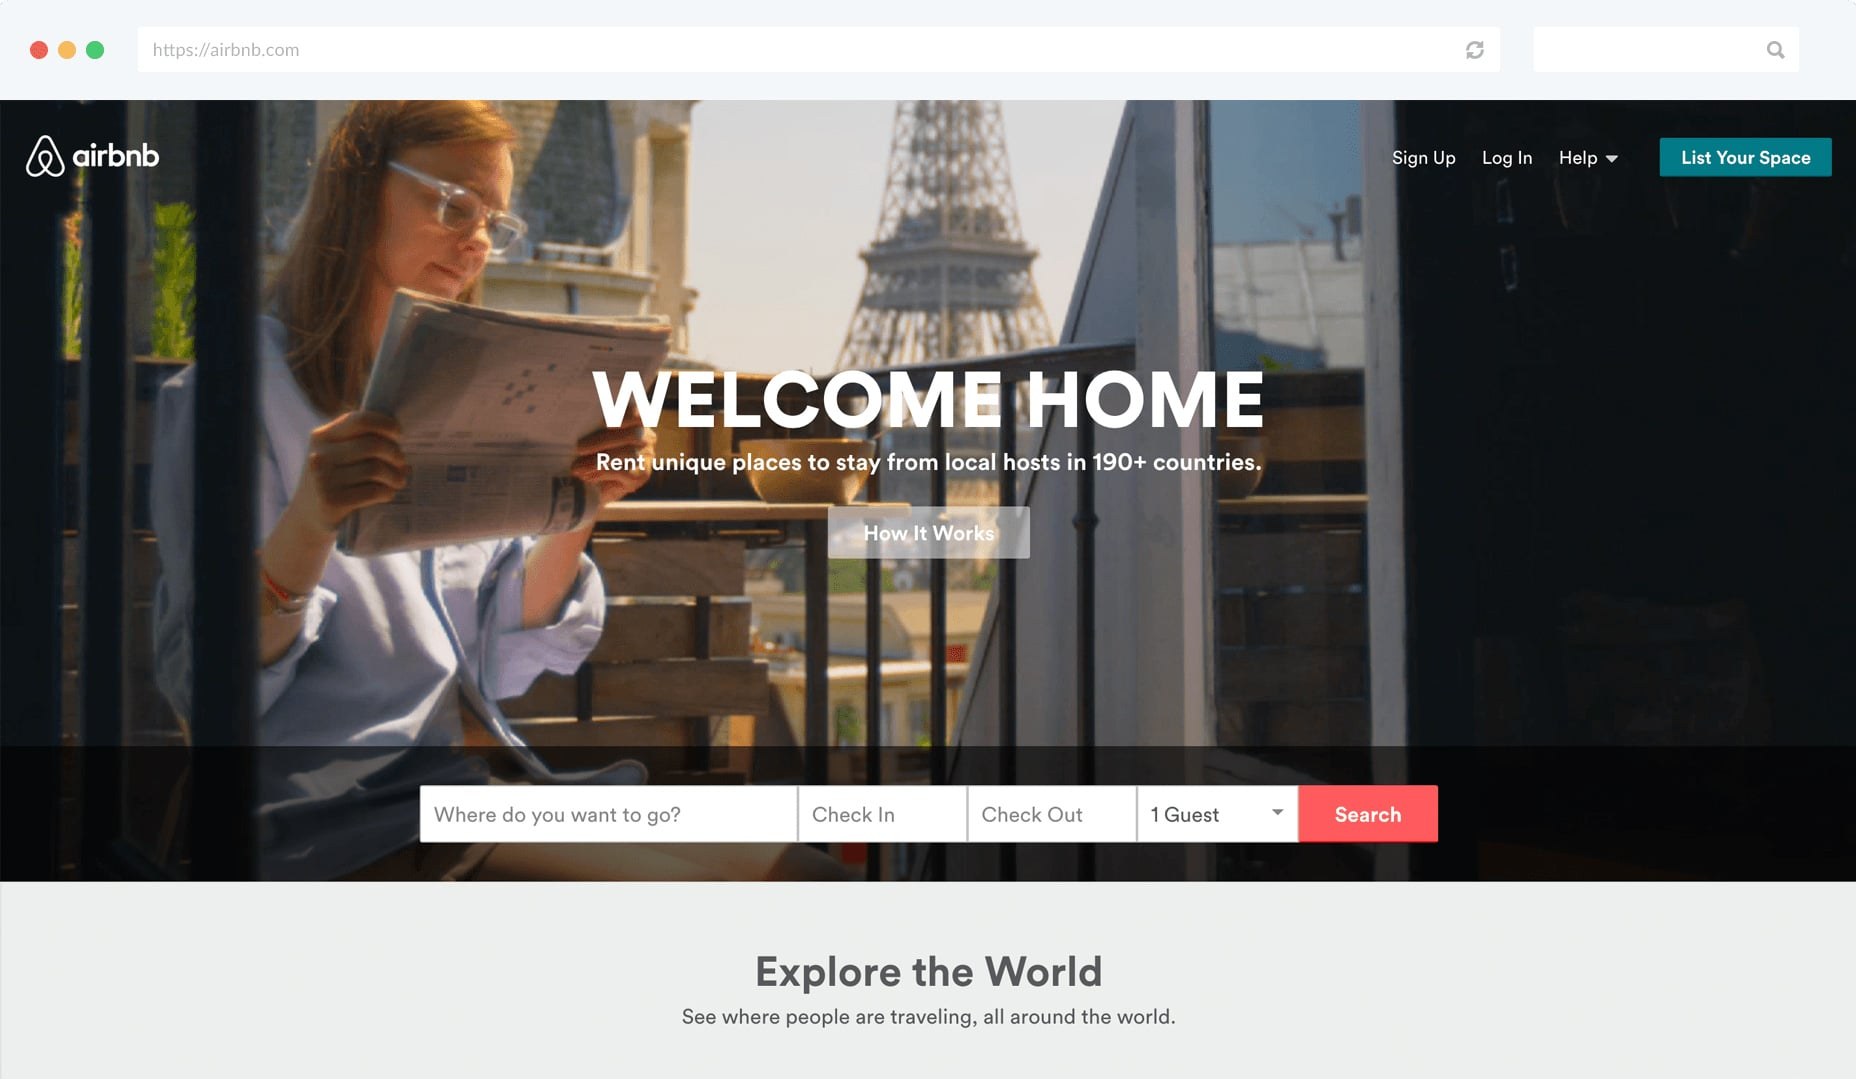 airbnb-welcome-home-1